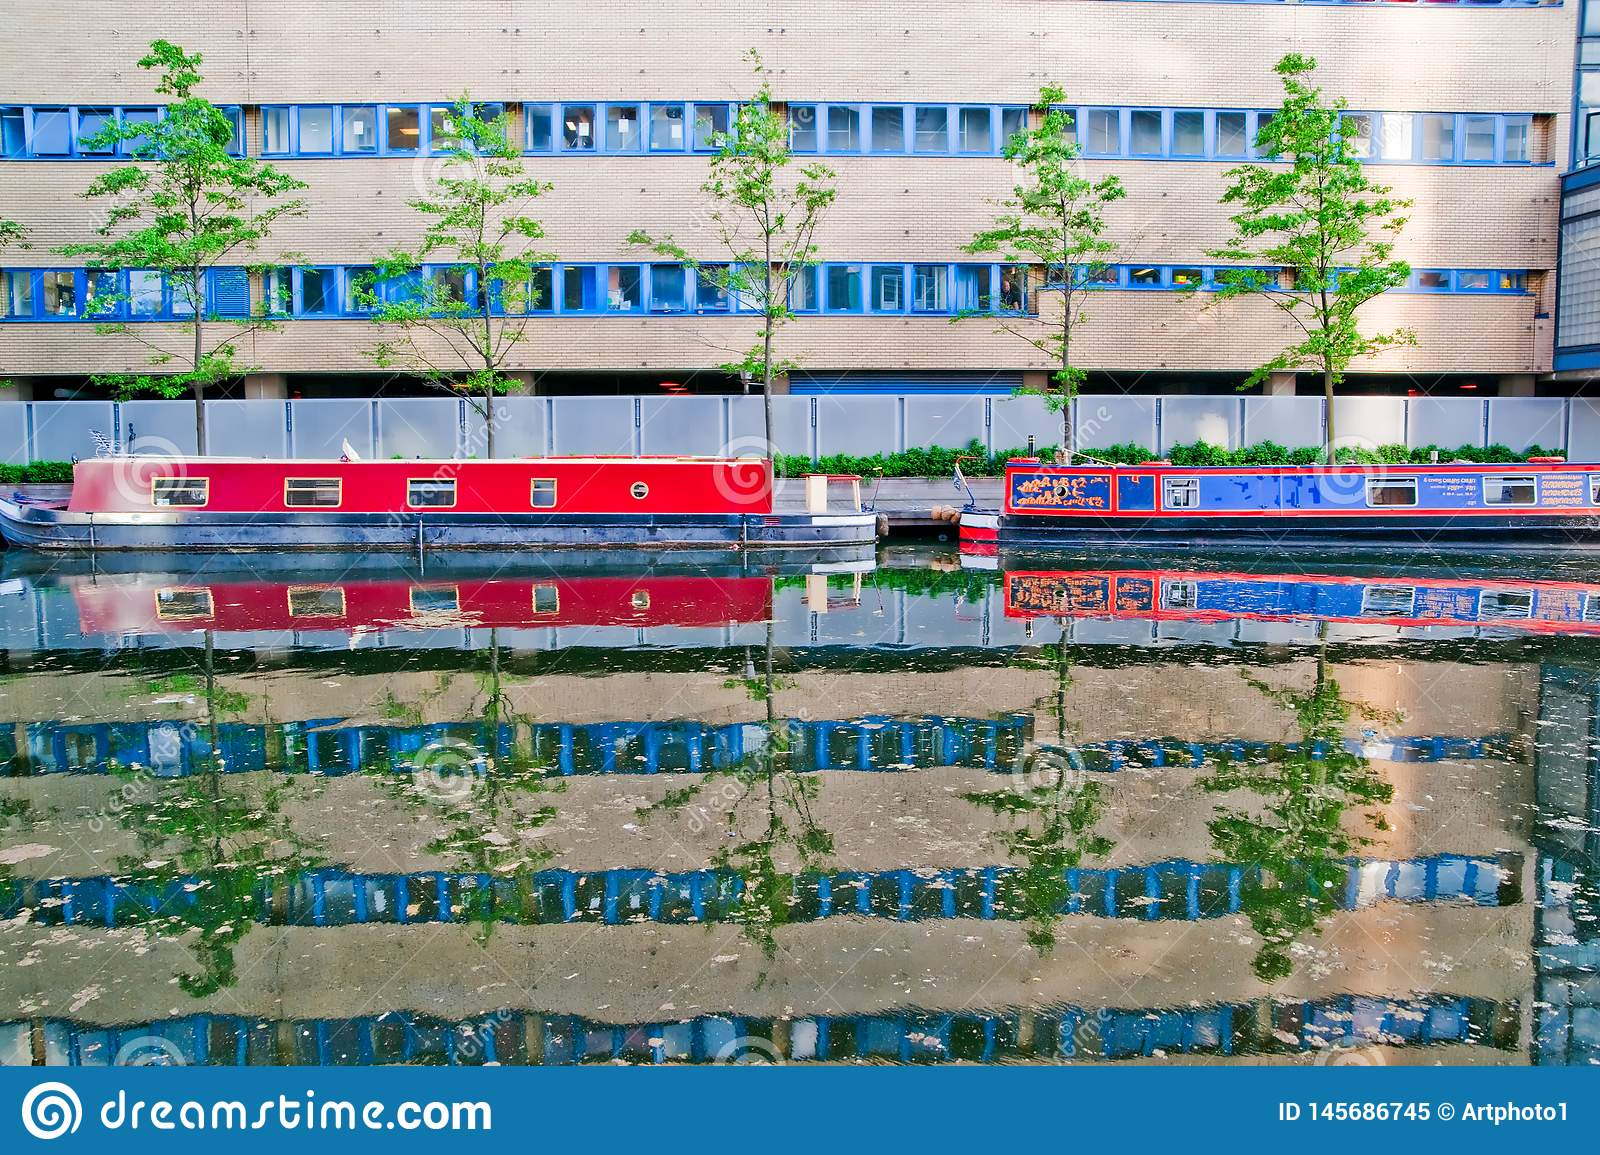 Canal boats, trees and building